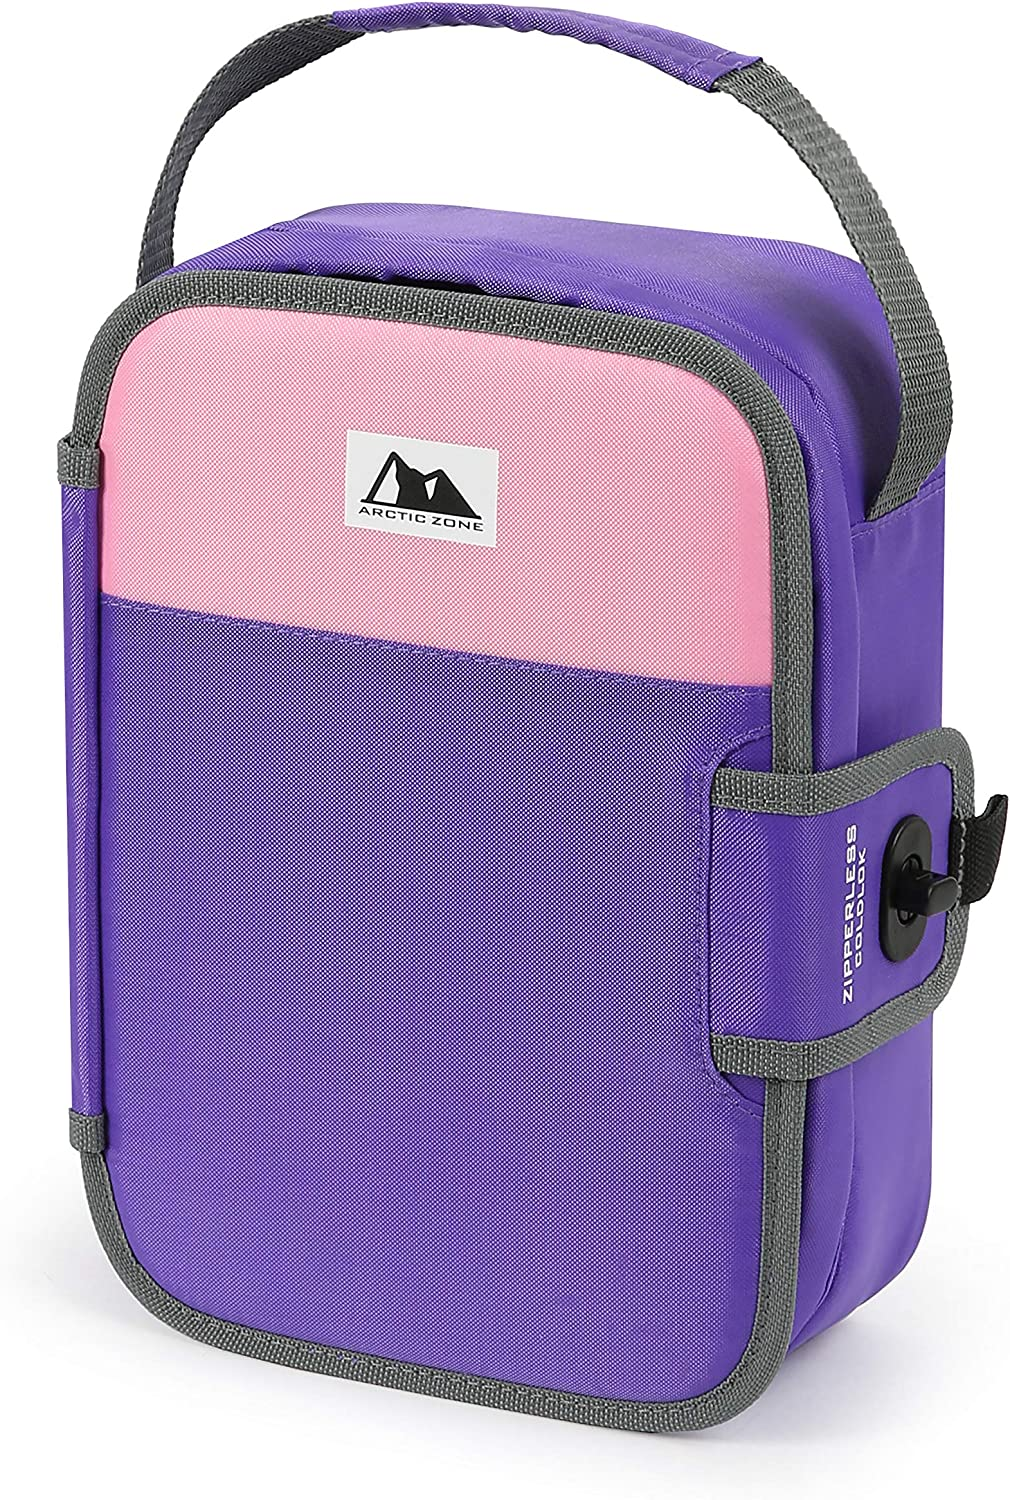 Artic Zone Zipperless Insulated Lunch Built Box Los Angeles Mall with Tr In Direct store